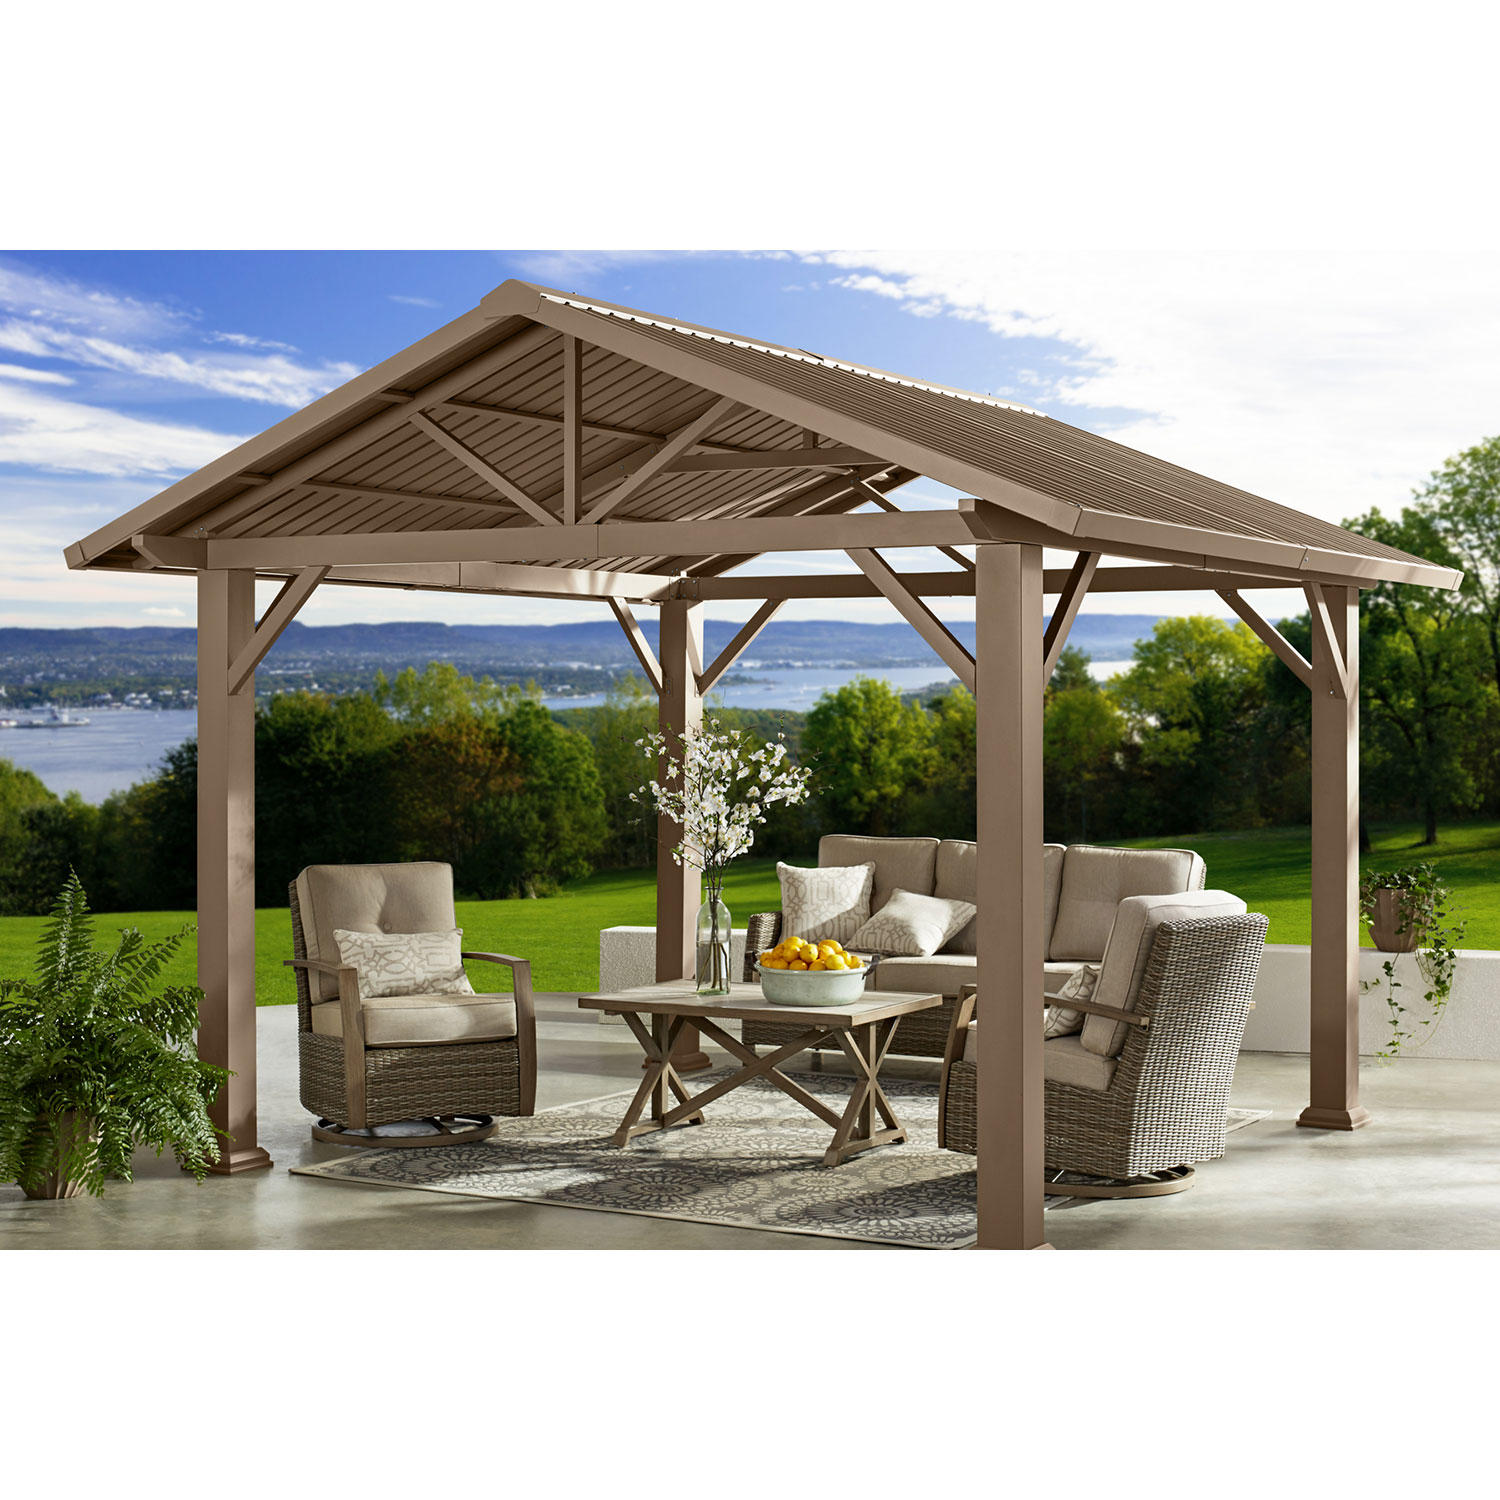 Member's Mark Triangle Hardtop Gazebo